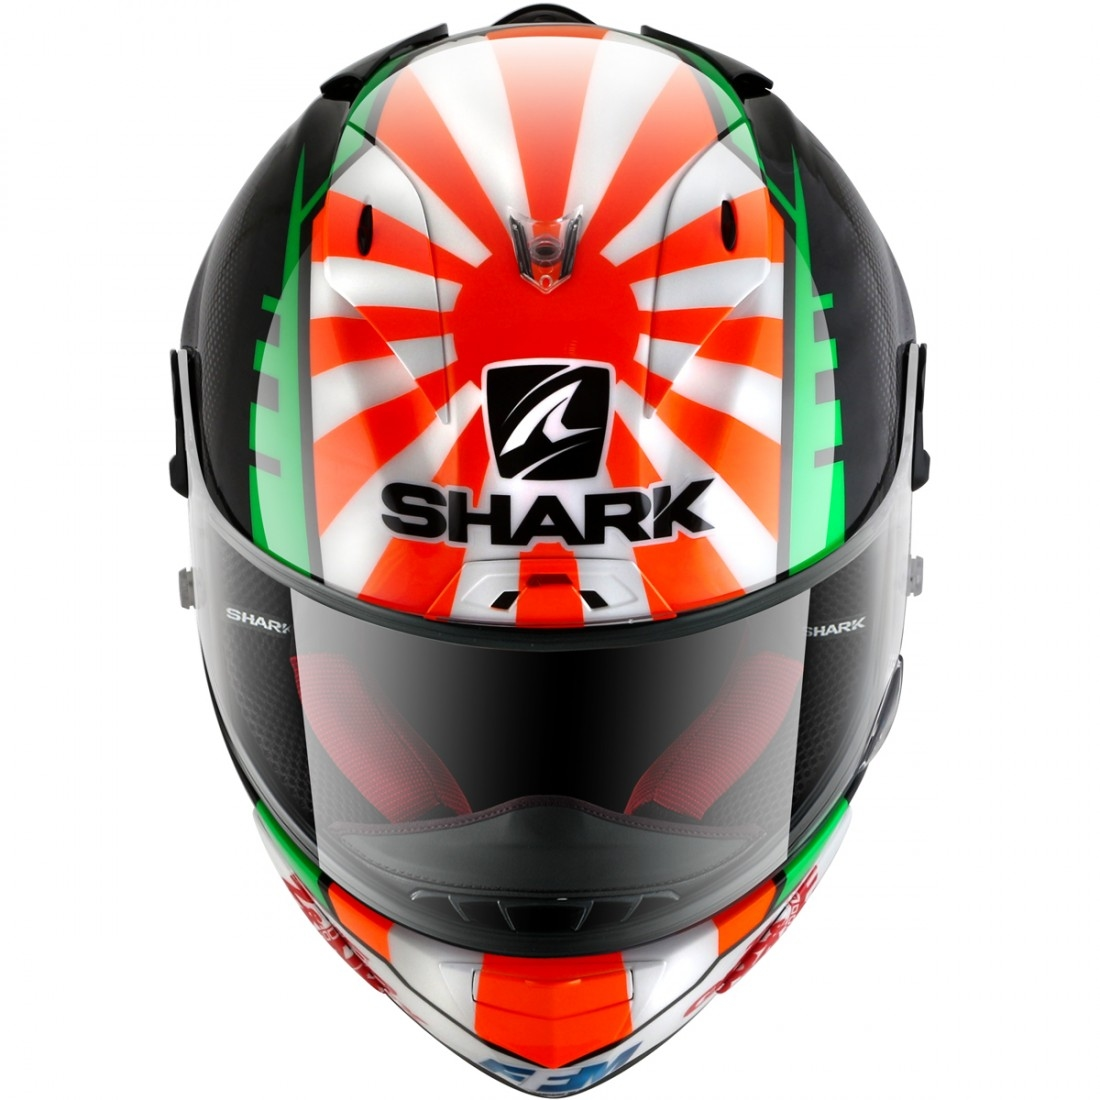 casque shark race r pro replica zarco 2017 black red green motocard. Black Bedroom Furniture Sets. Home Design Ideas